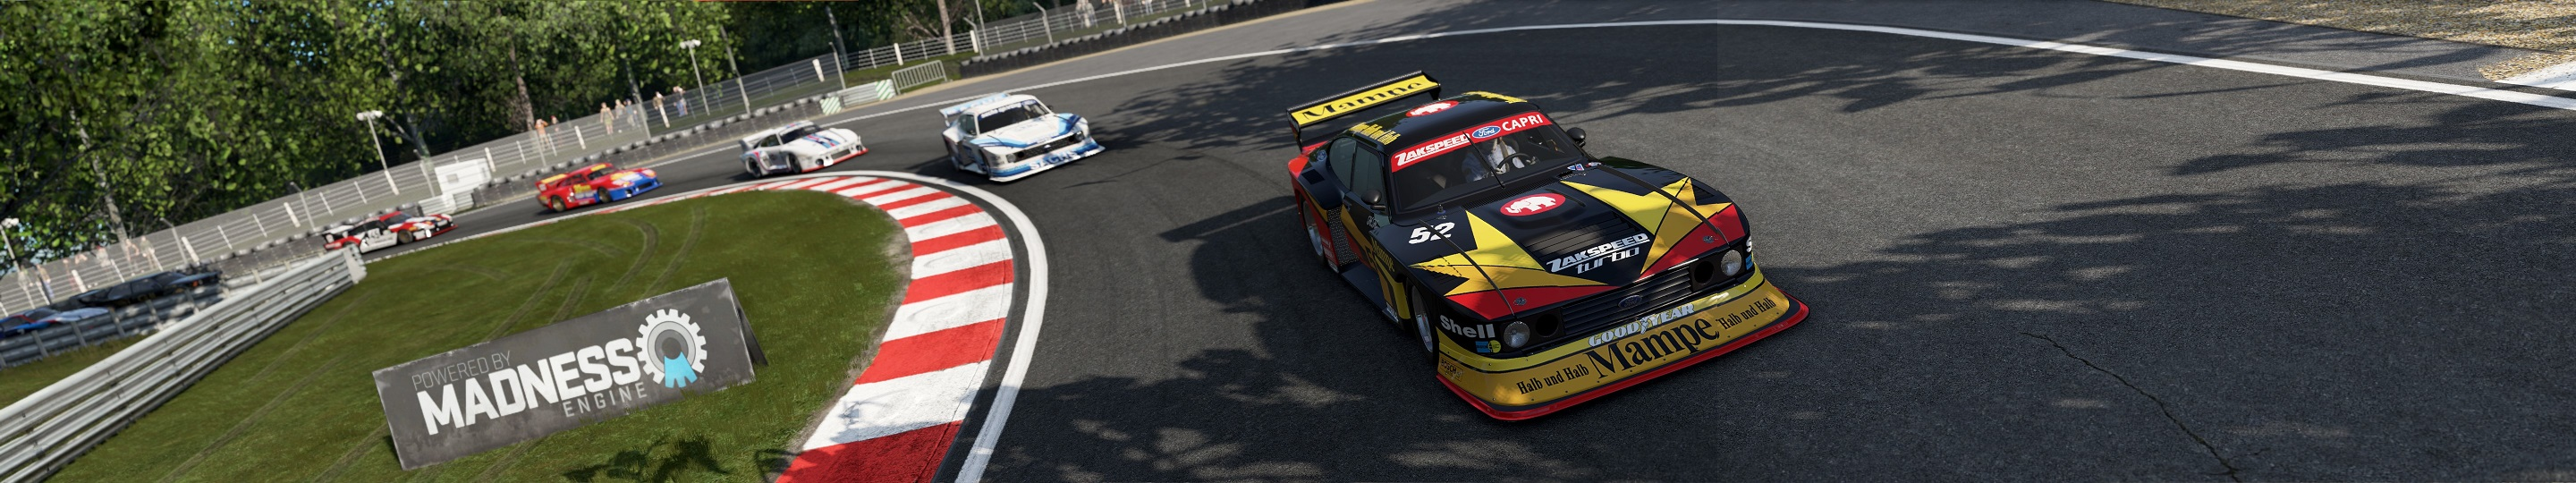 PCARS GROUP 5 2 BRANDS HATCH.jpg